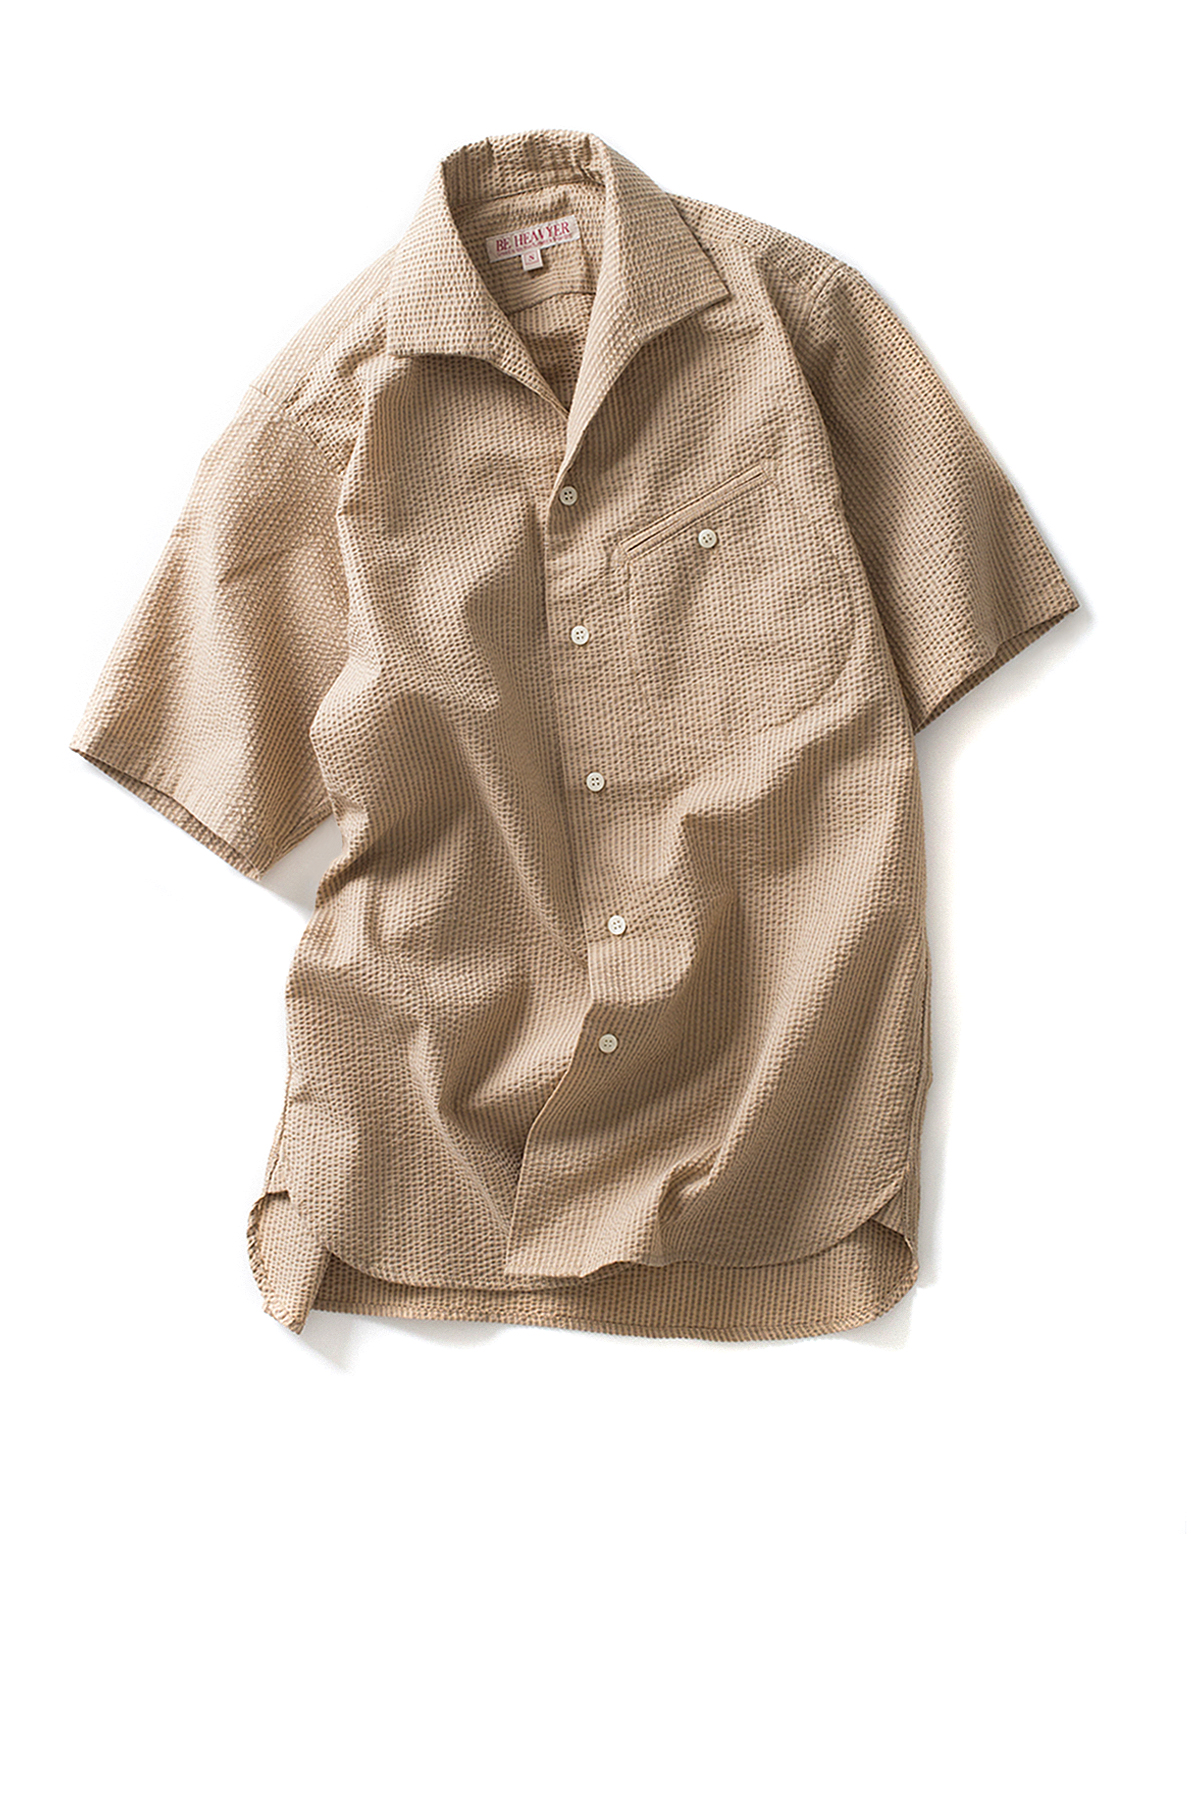 Be Heavyer : Flight Shirt (Beige)